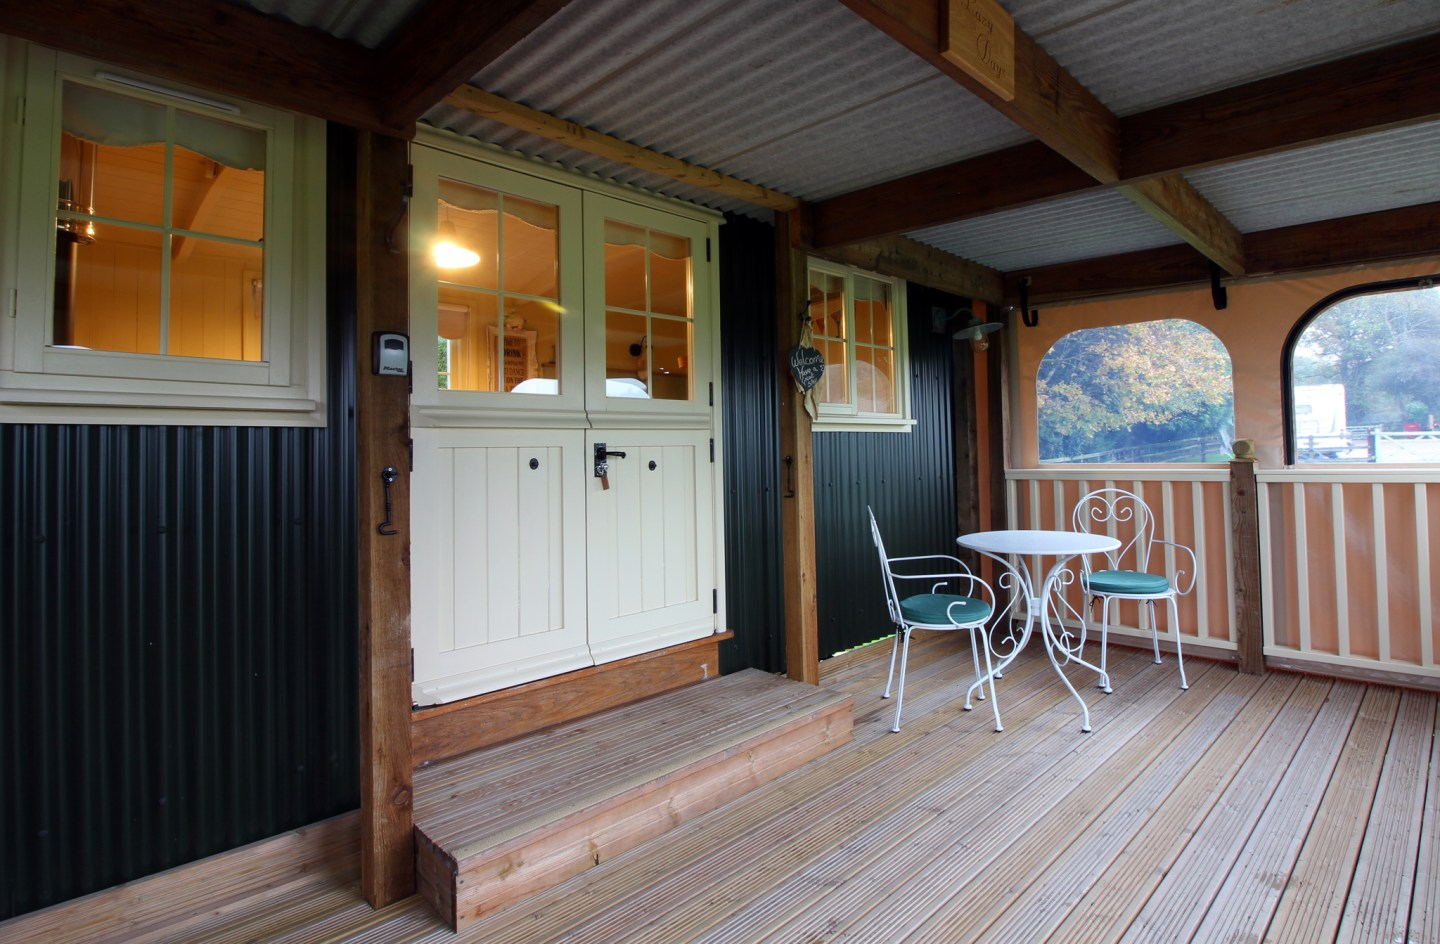 Two Hoots Glamping Campsite Hampshire – Shepherds Hut Review